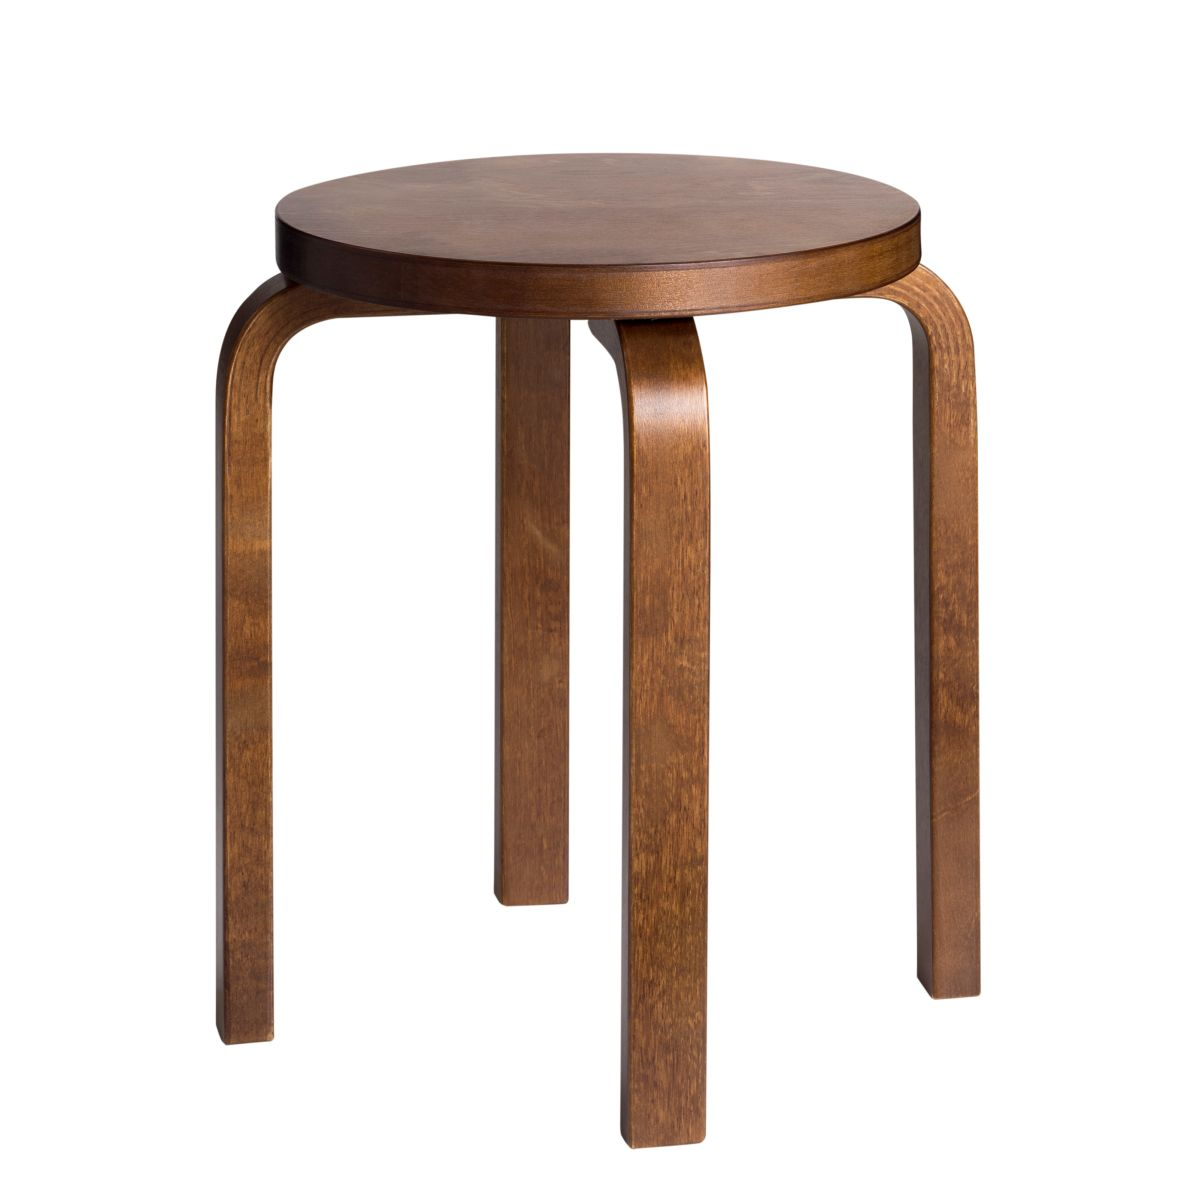 Stool-E60-Walnut-Stain